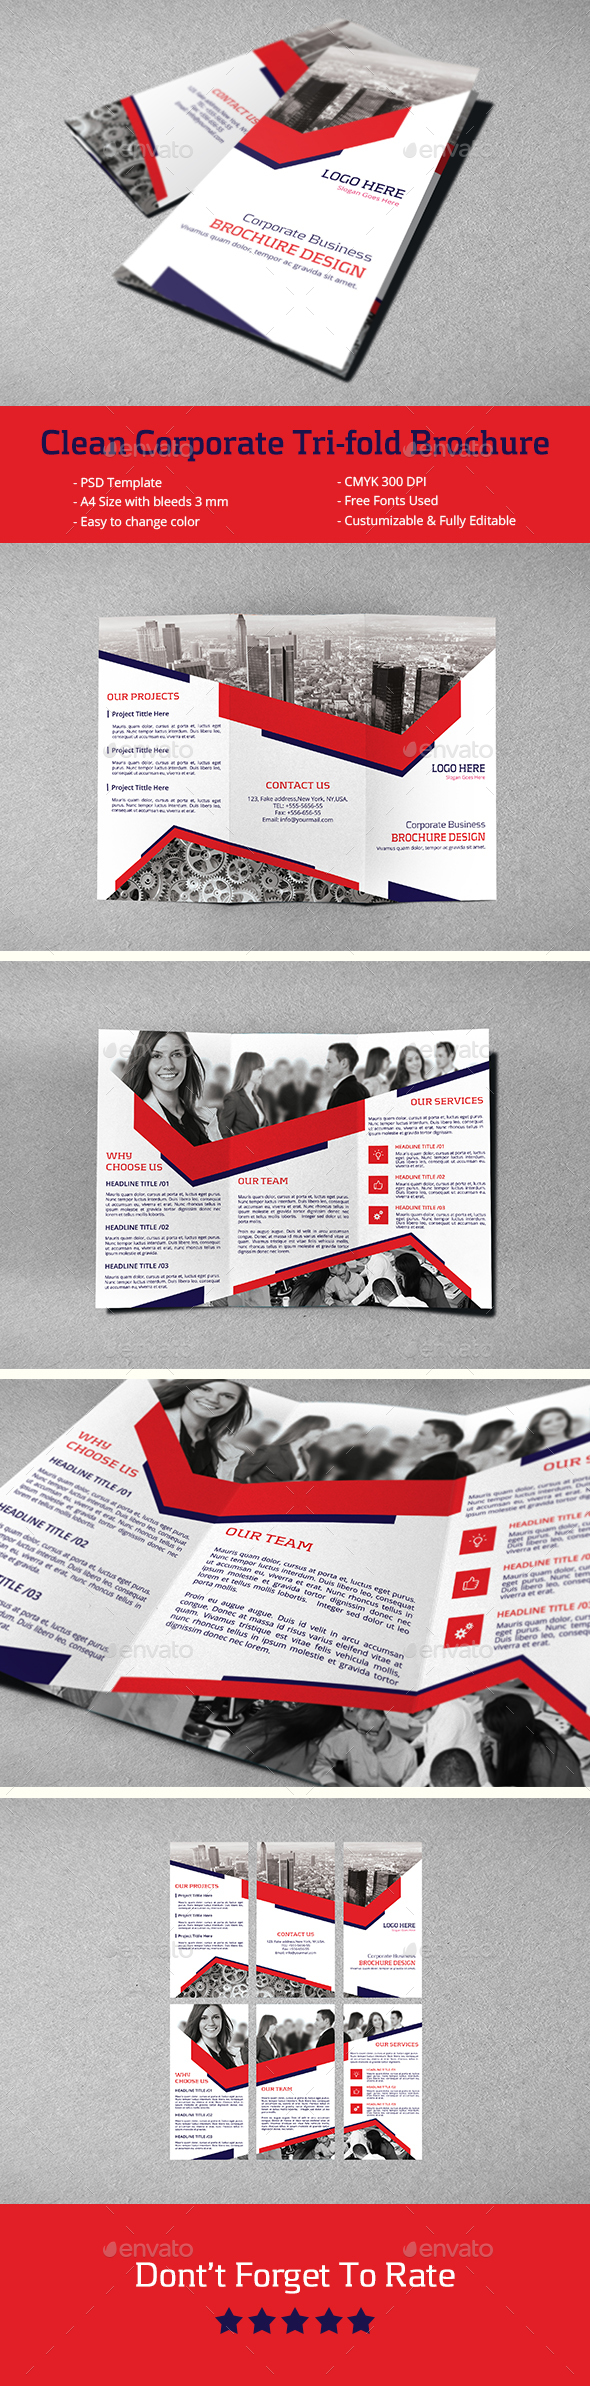 Clean Corporate Tri-Fold Brochure - Corporate Brochures